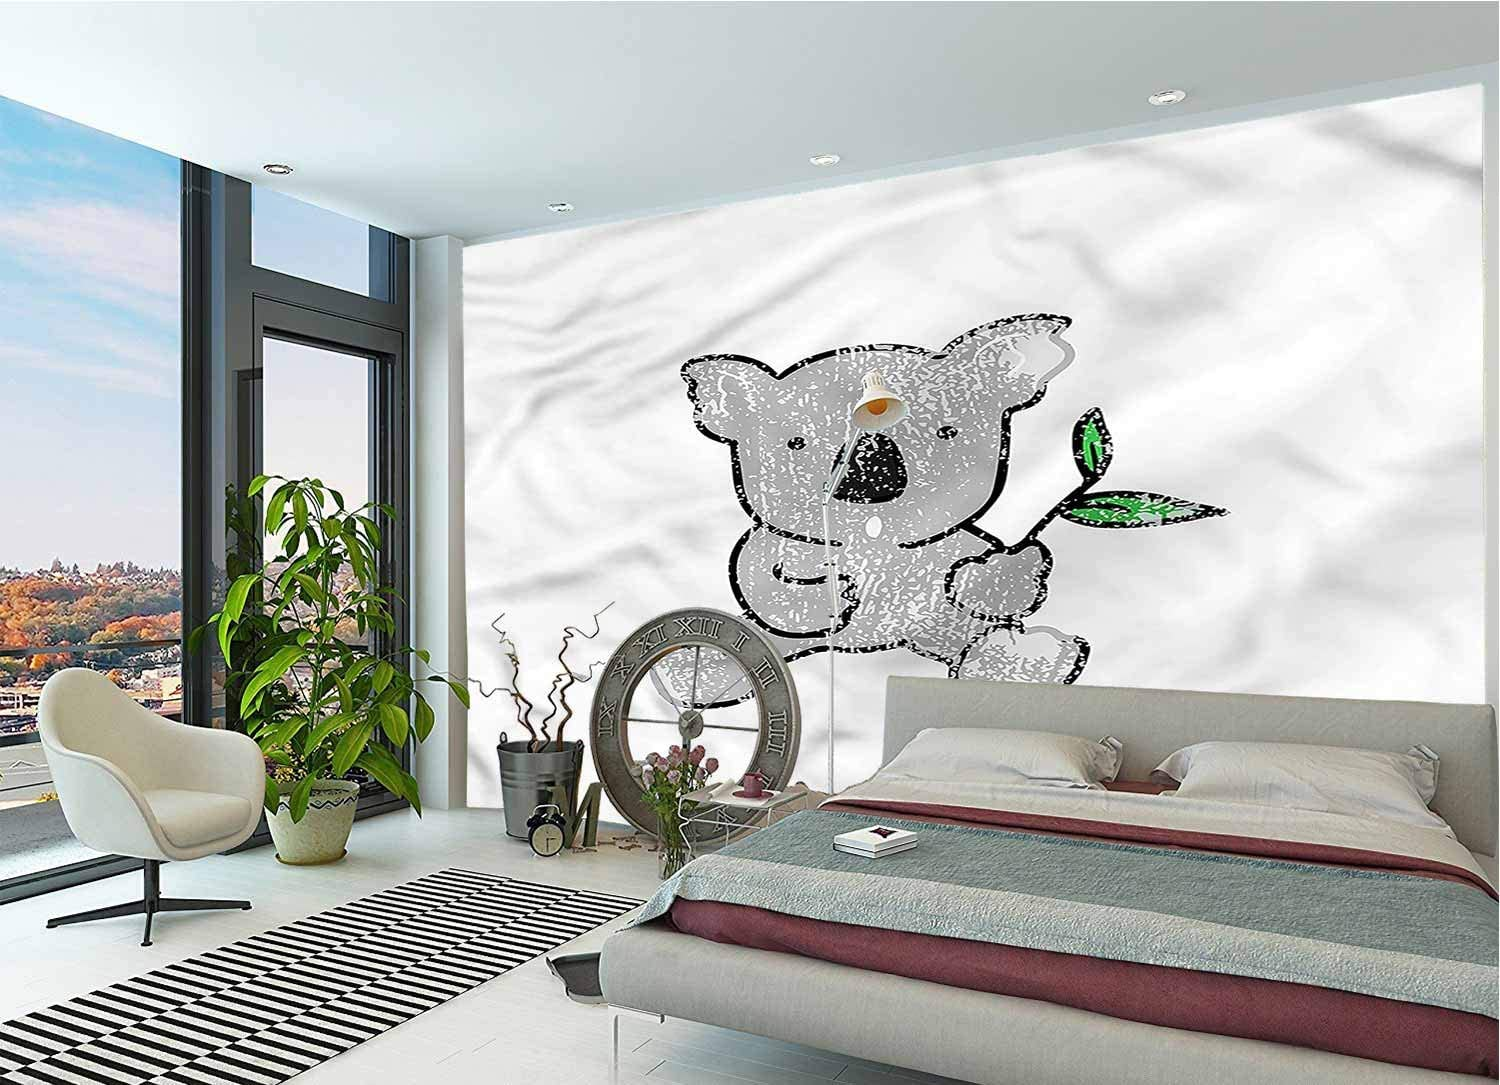 LCGGDB Koala Wall Mural Decal,Cartoon Style Drawing Bear Removable Large Wall Mural for Livingroom Bedroom Nursery School Family Wall Decals-144x100 Inch